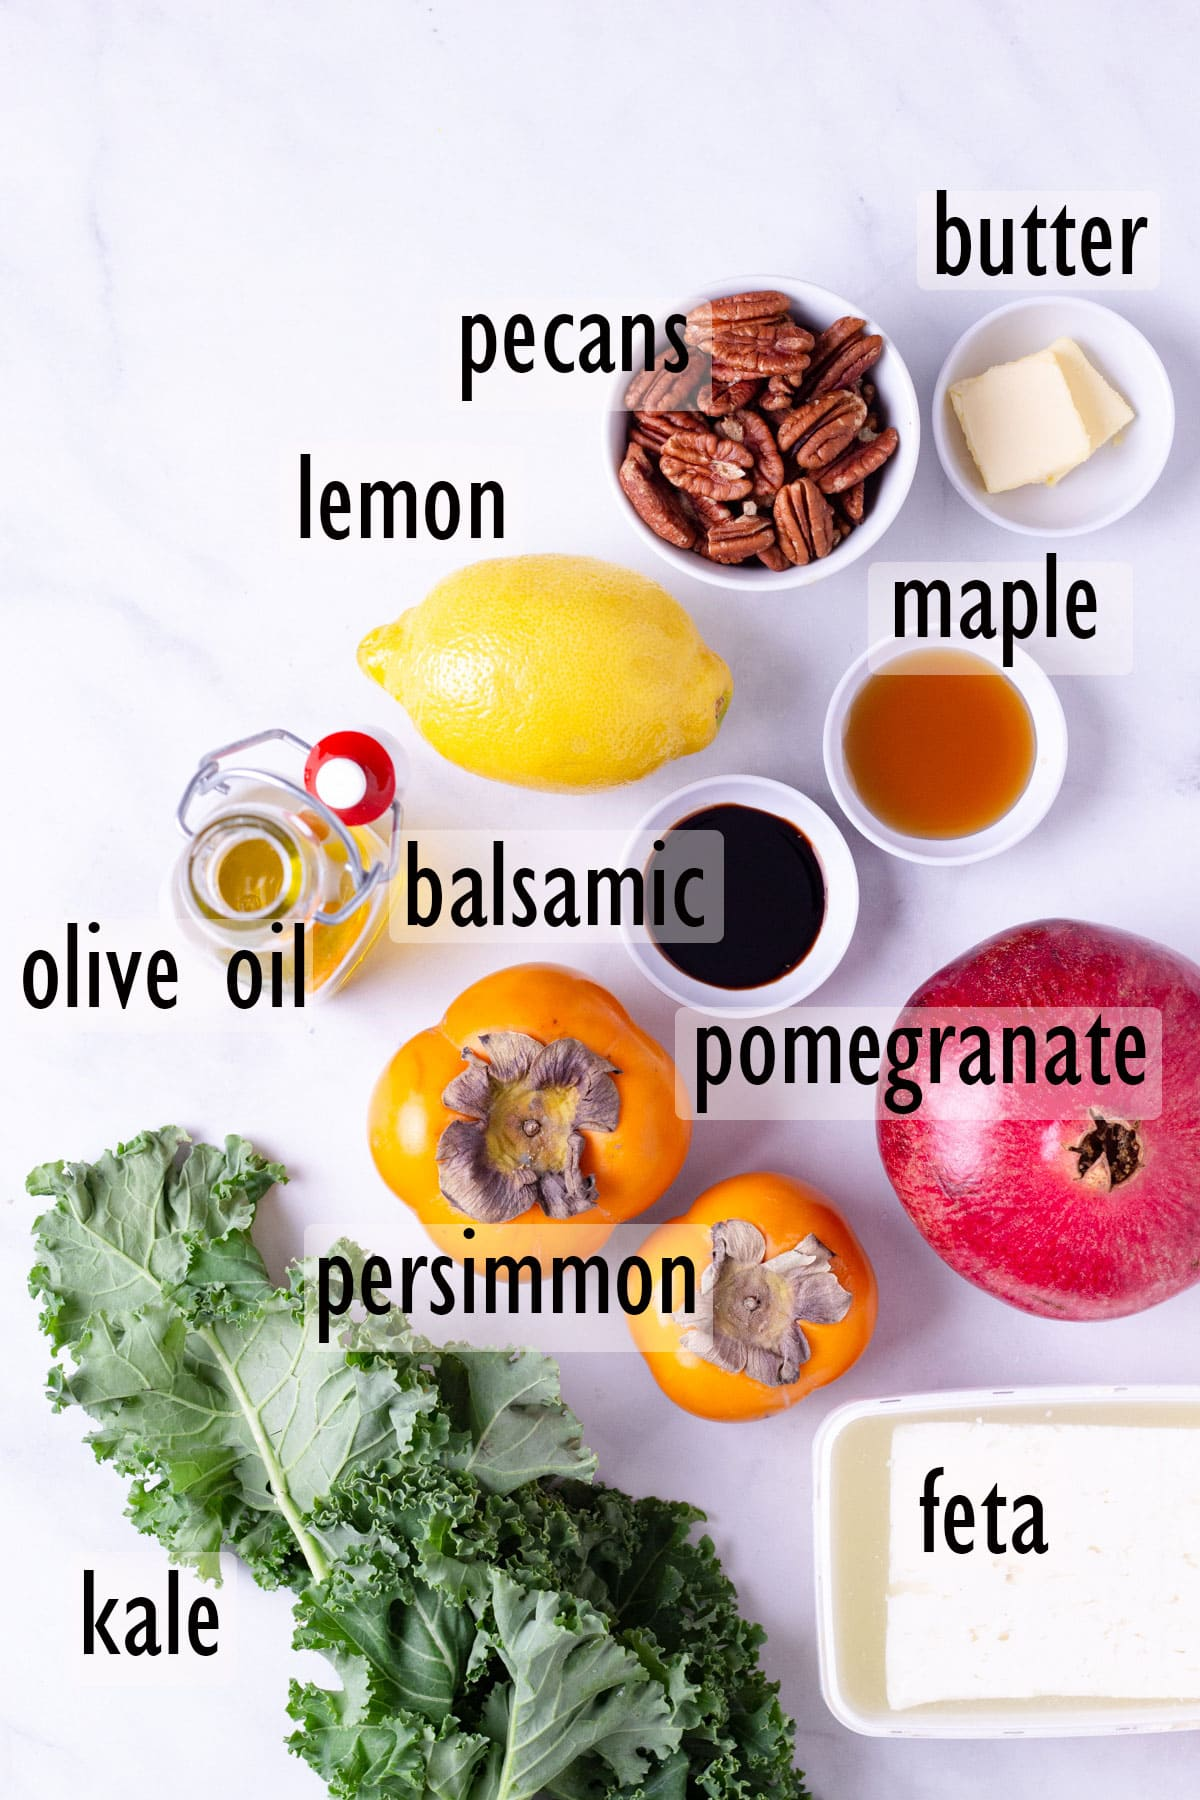 Ingredients for Pomegranate, Kale and Persimmon Salad, including nuts, cheese and balsamic vinegar.